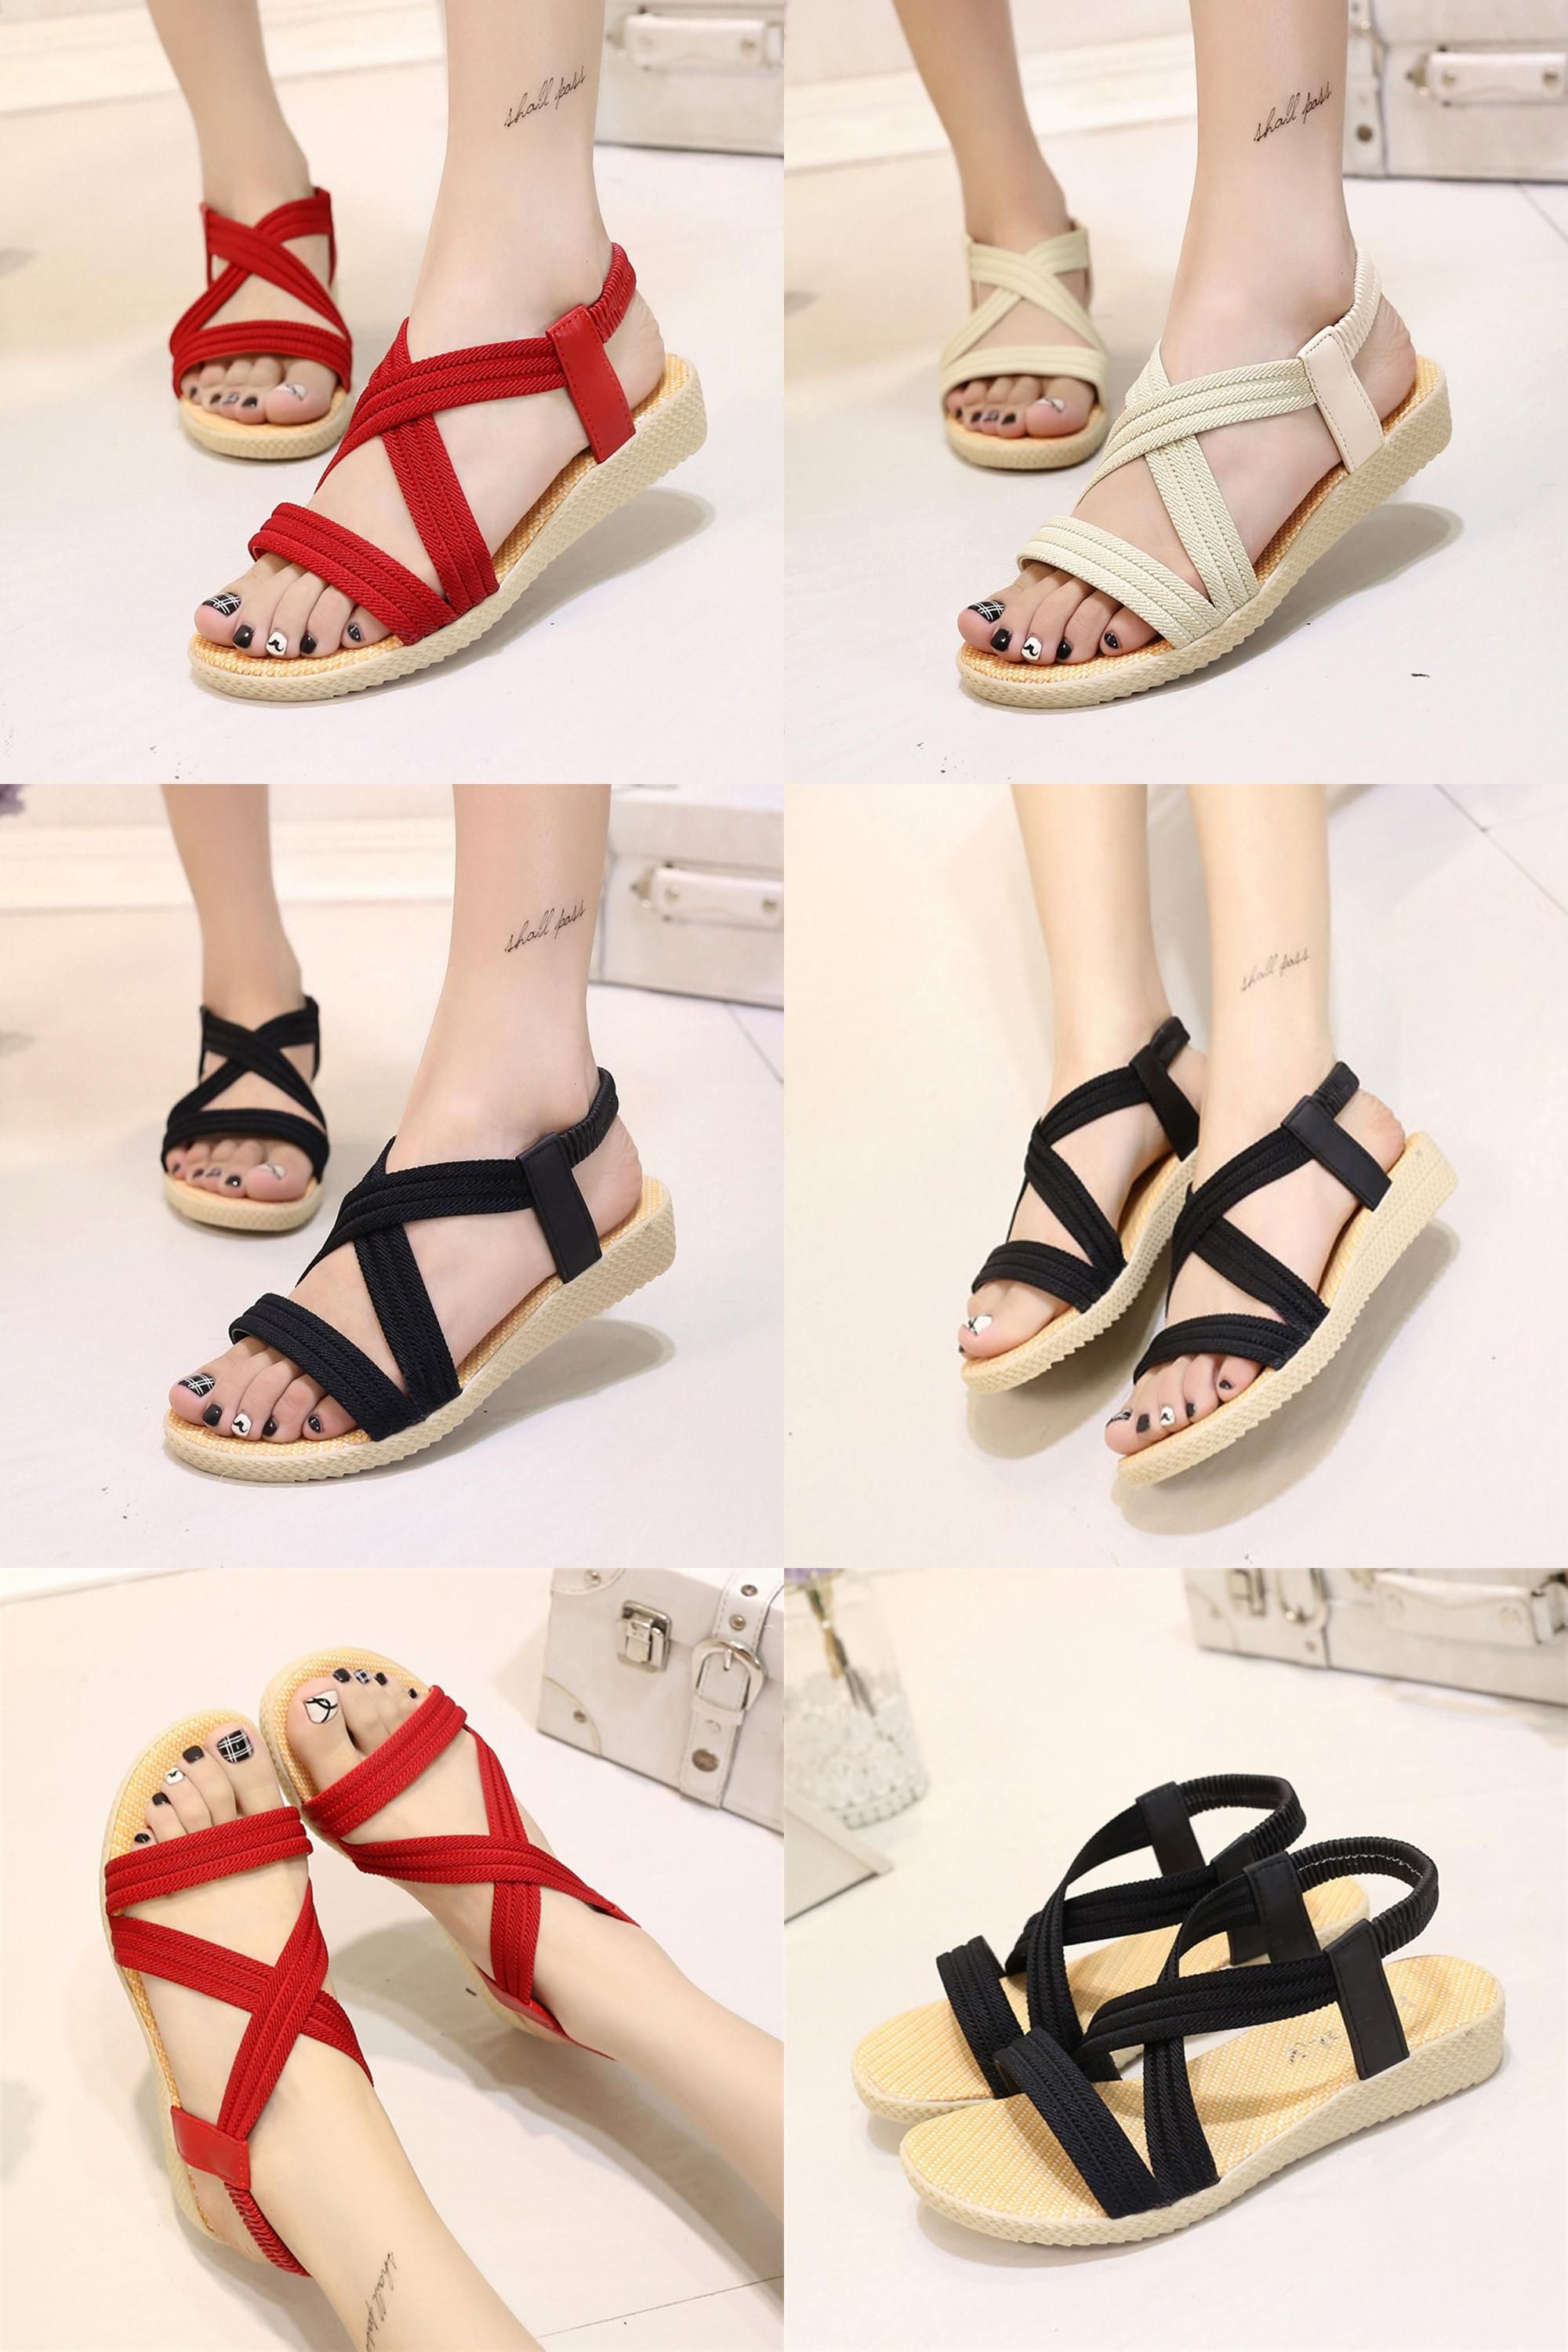 fdbbda034608a [Visit to Buy] Shoes Woman Sandals Zapatos Mujer Girls Sweet Flat Ladies  Shoe Summer Bohemia Beach Casual Sapatos Leisure Simple Sandal 2017New # ...